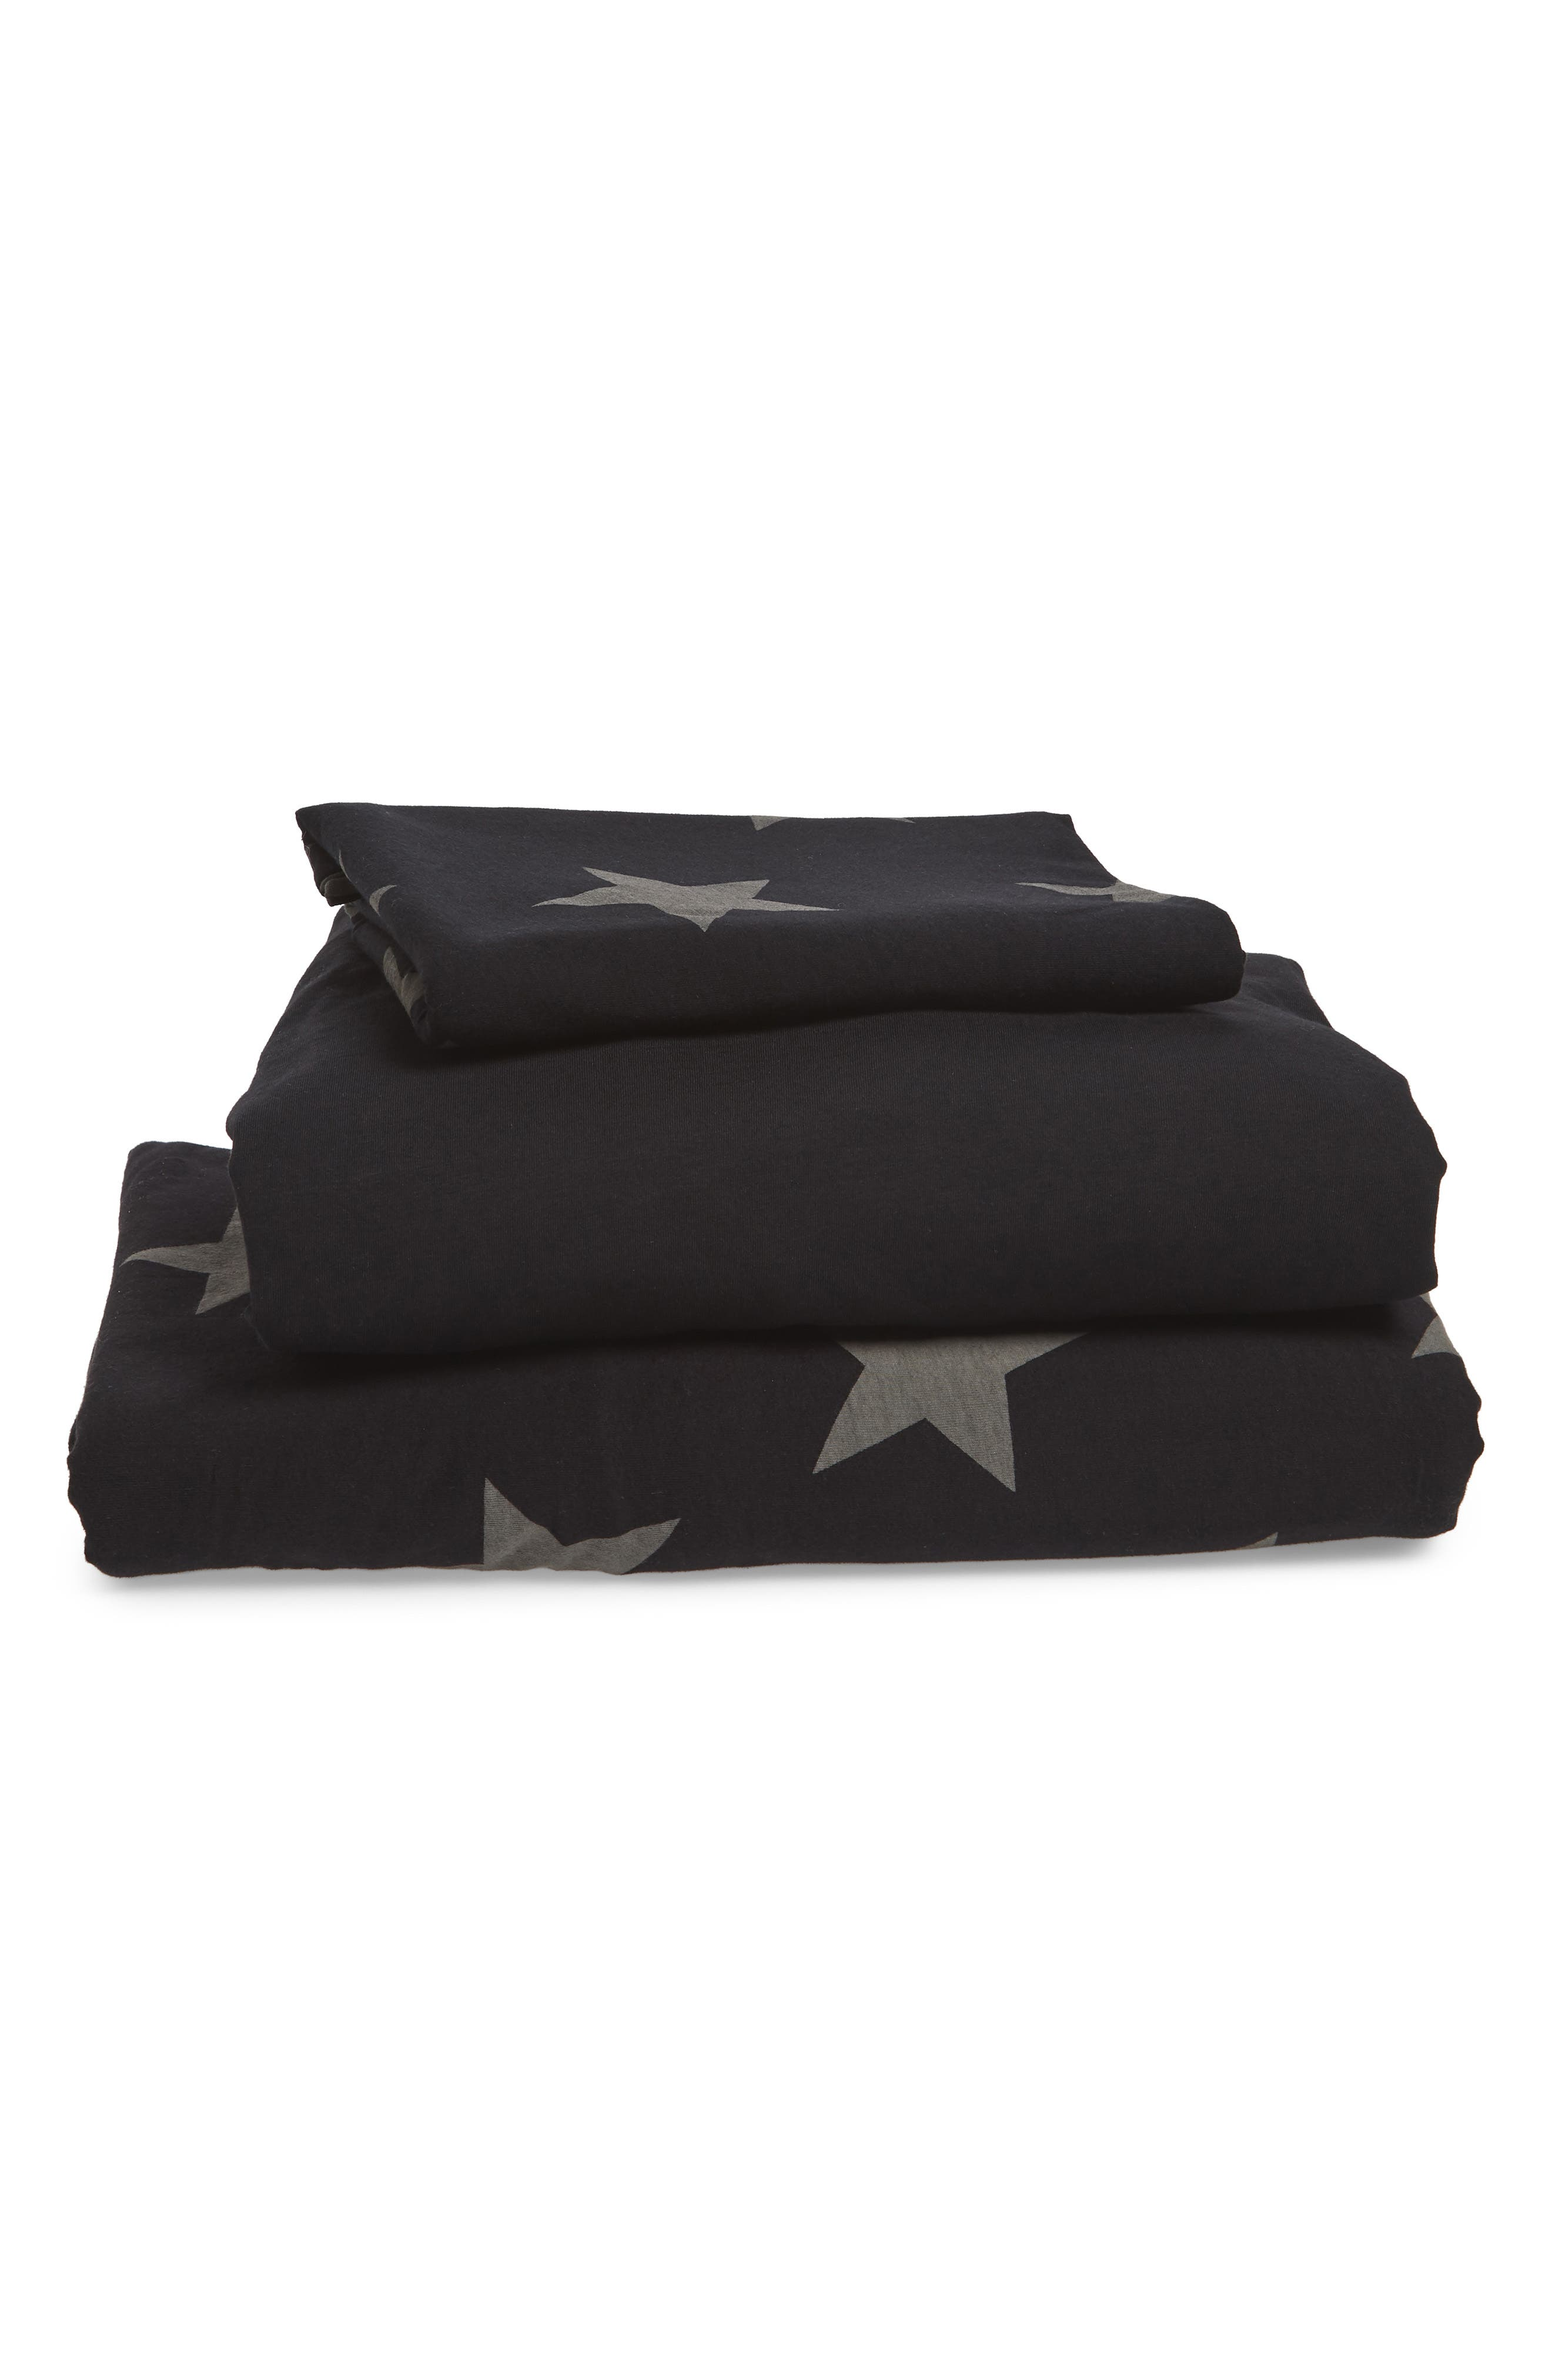 Star Duvet Cover & Sheet Set,                         Main,                         color, BLACK